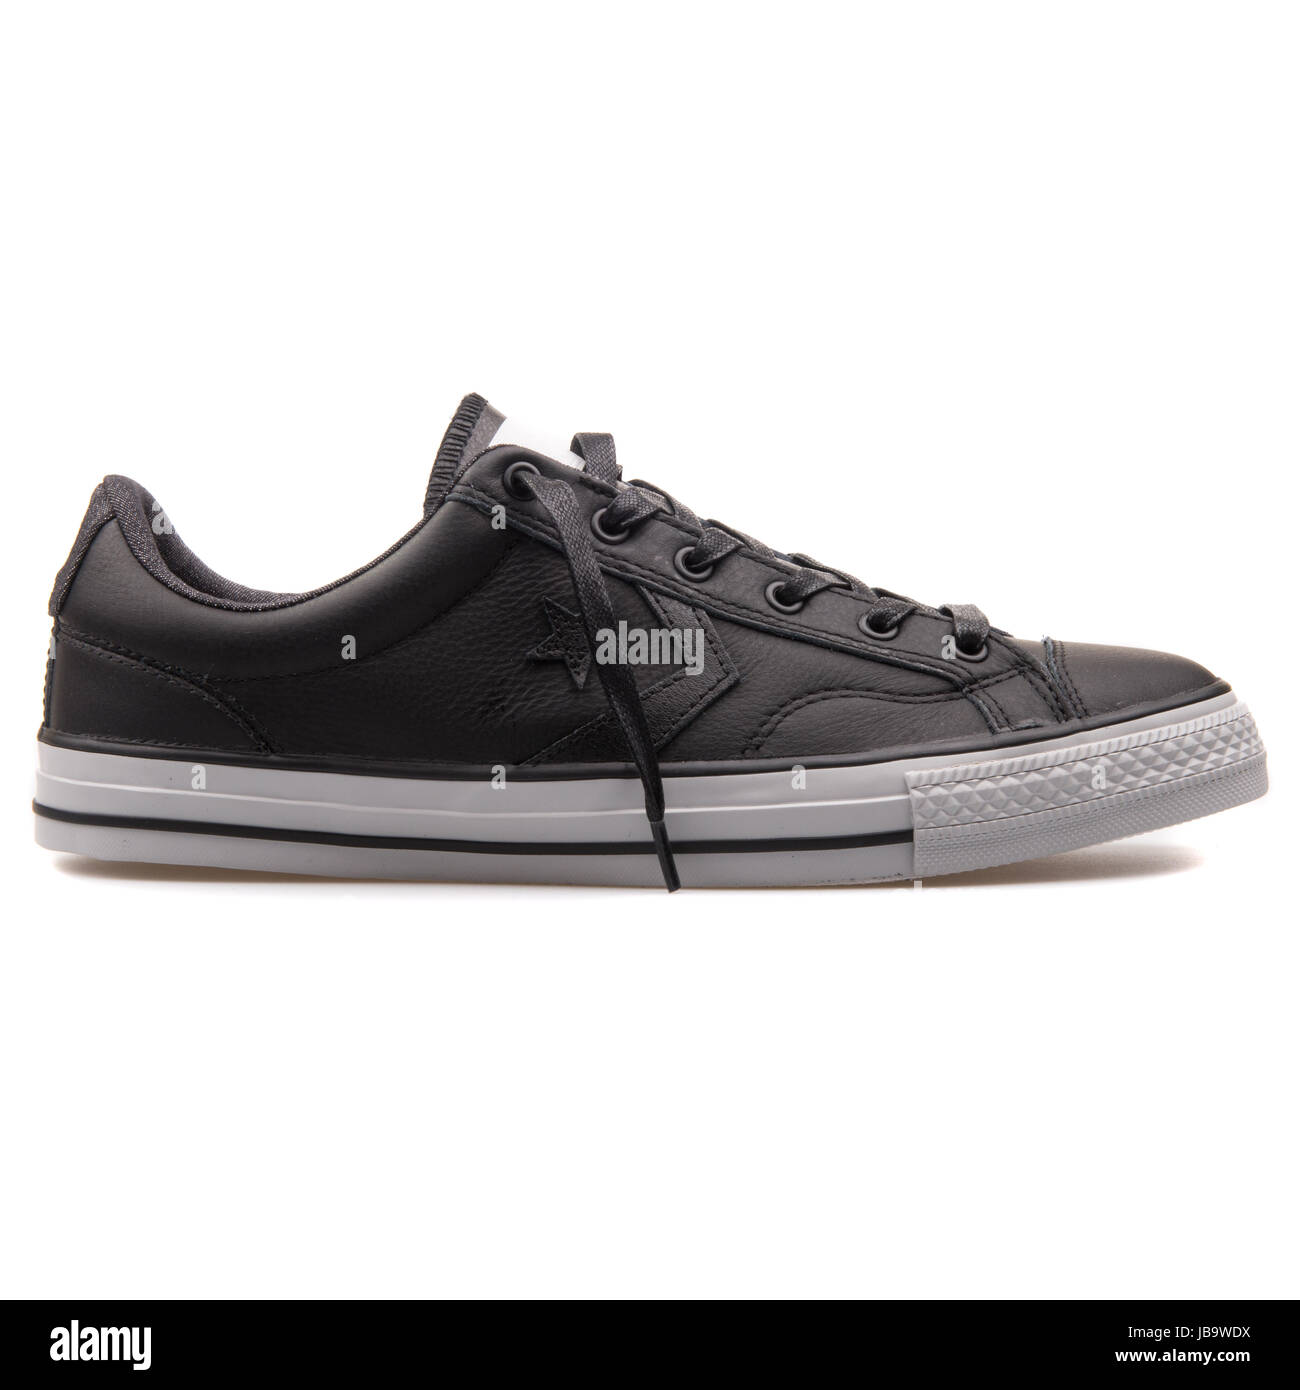 4cf594c70c2 Converse Chuck Taylor All Star Player OX Black Leather Unisex Shoes -  149765C - Stock Image